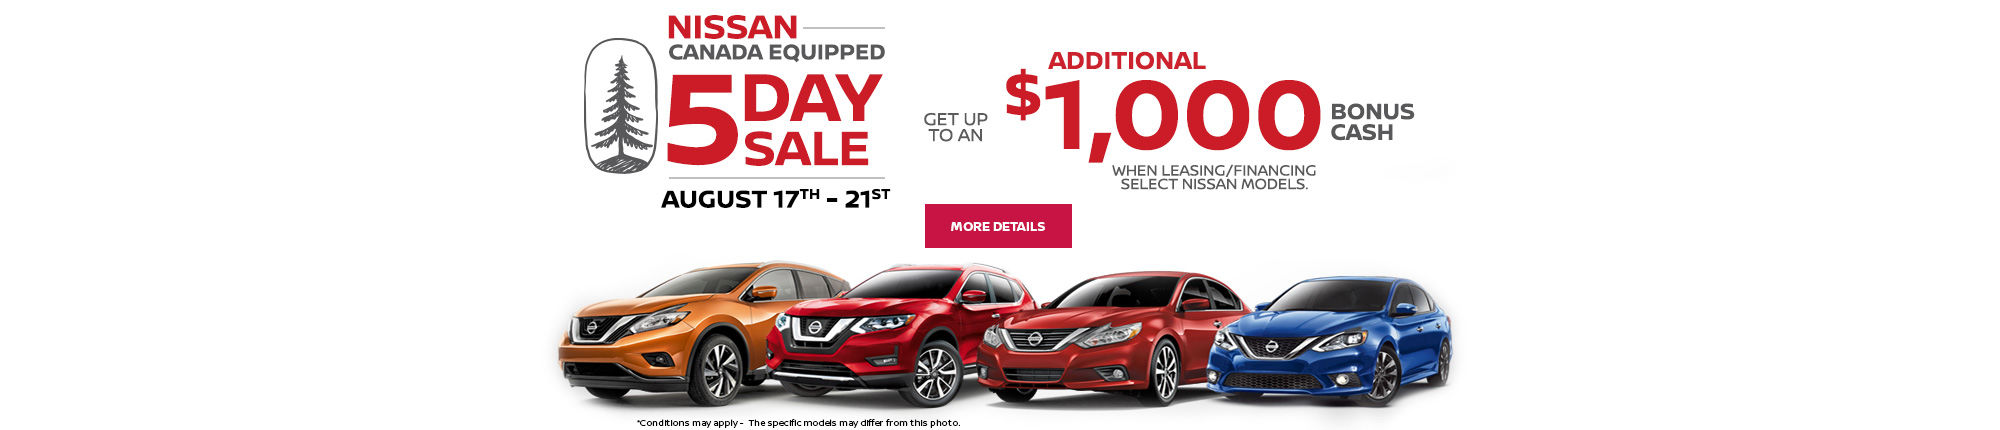 Nissan Canada Equipped 5 Day Sale